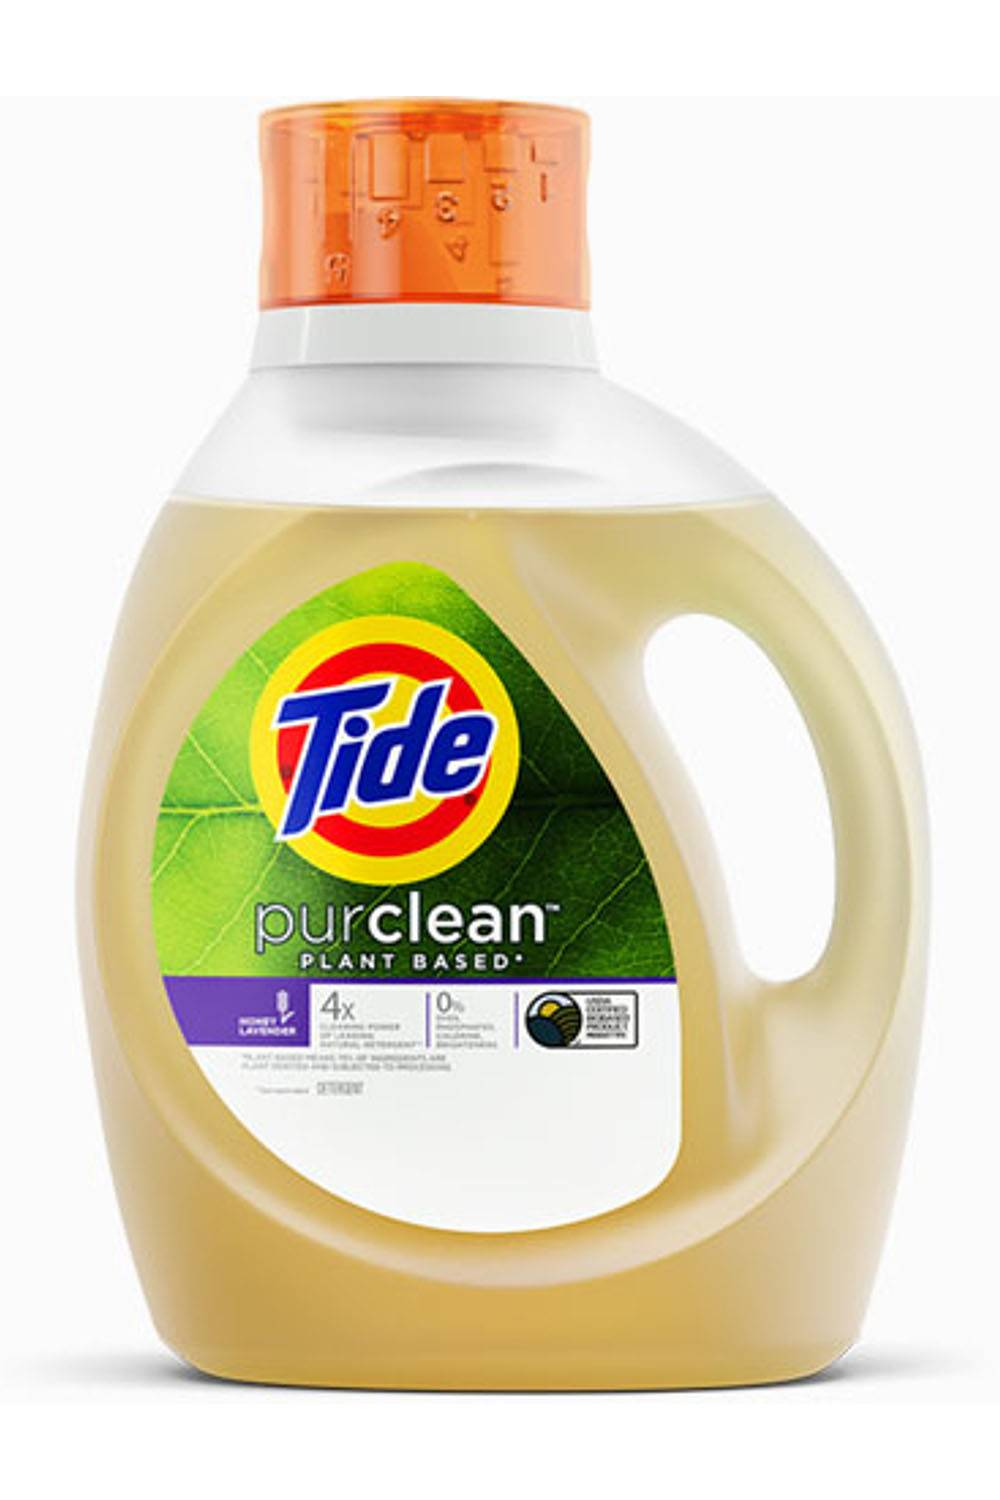 tide pure clean eco laundry detergent